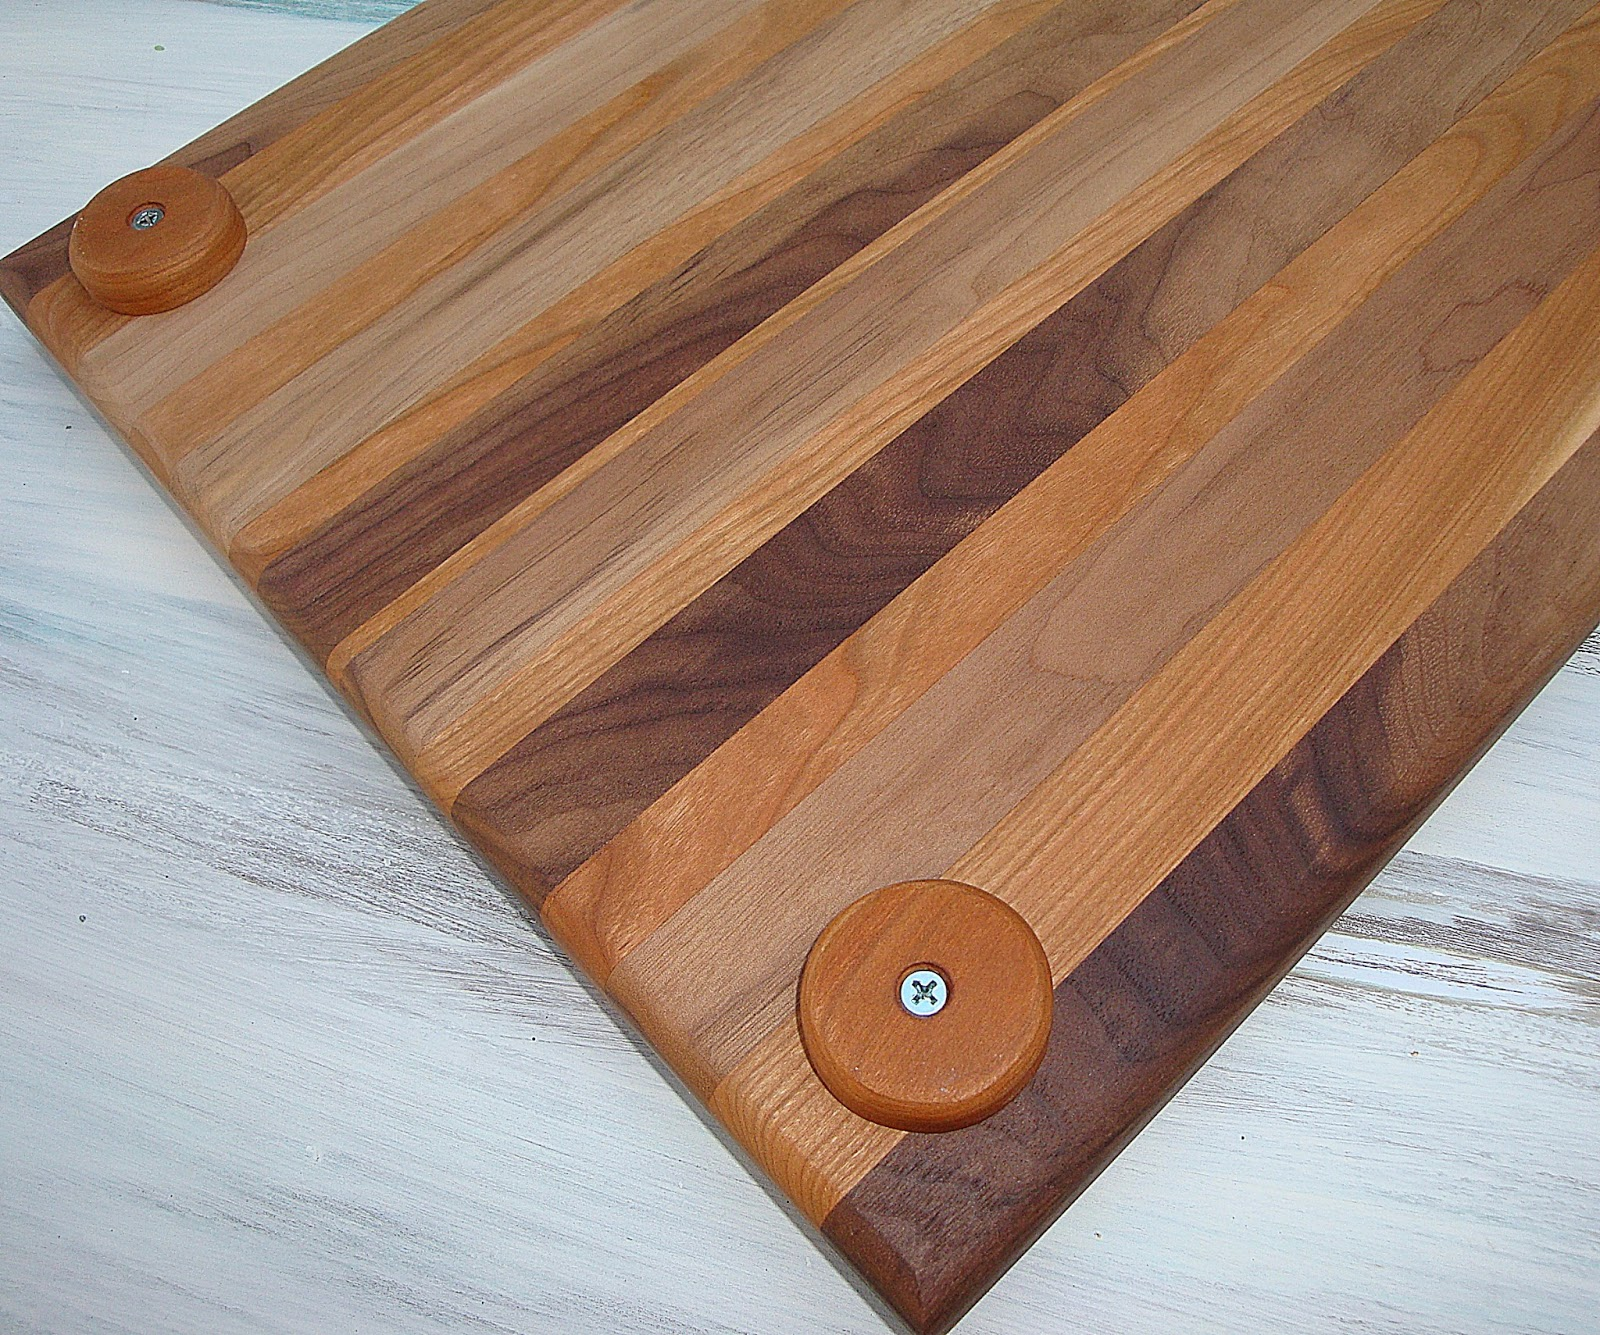 Nagevoce eco finished furniture tb exotic wooden cutting